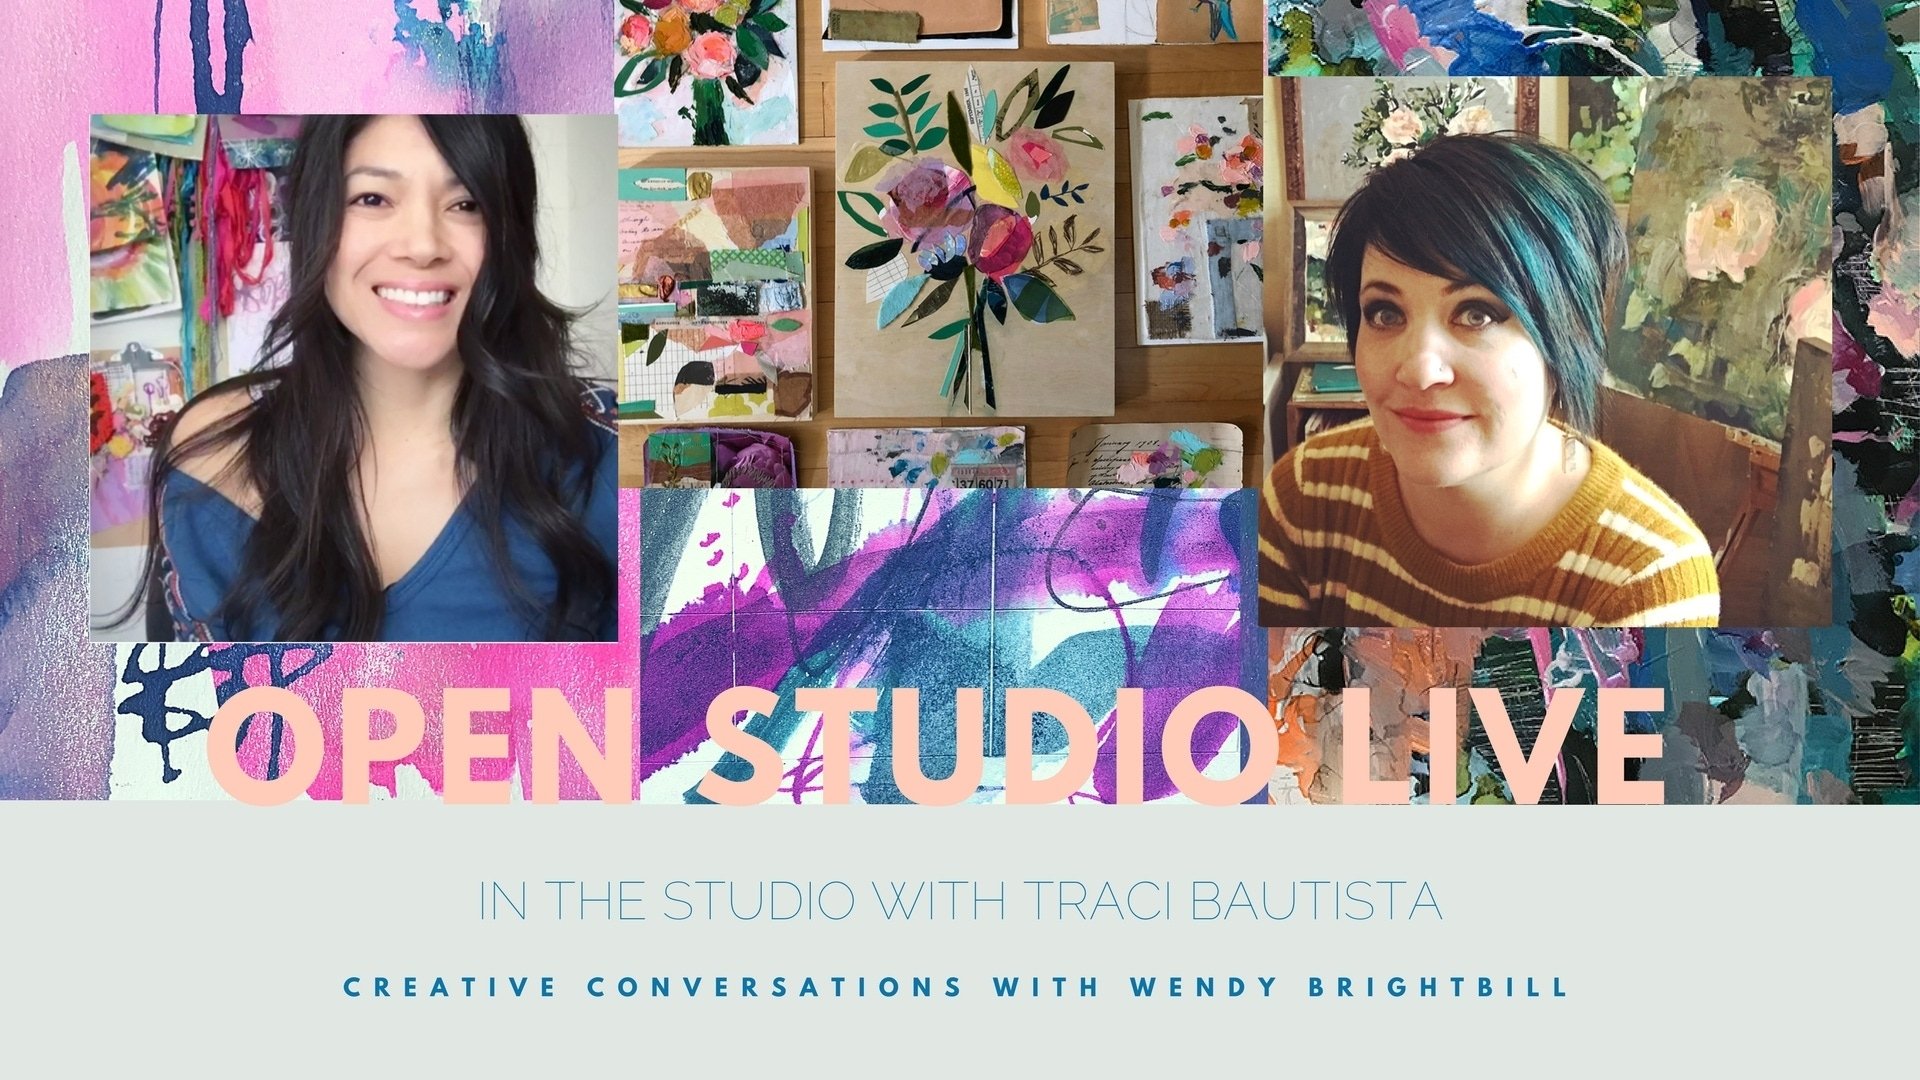 creative conversations with traci bautista and wendy brightbill